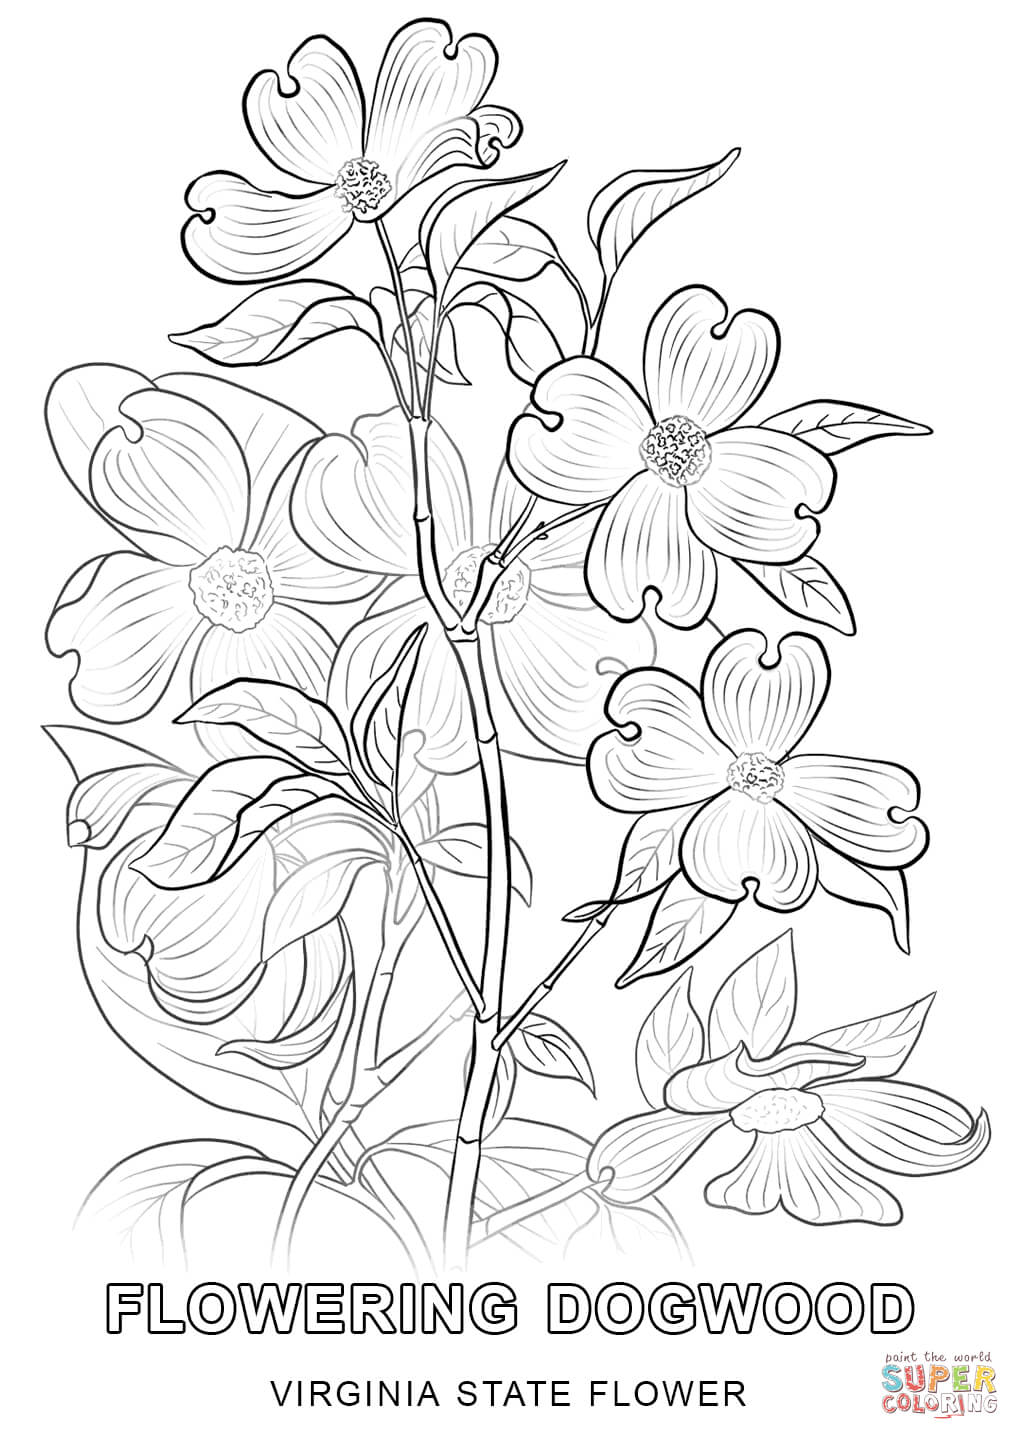 virginia state coloring page virginia state flower coloring page woo jr kids activities virginia state coloring page